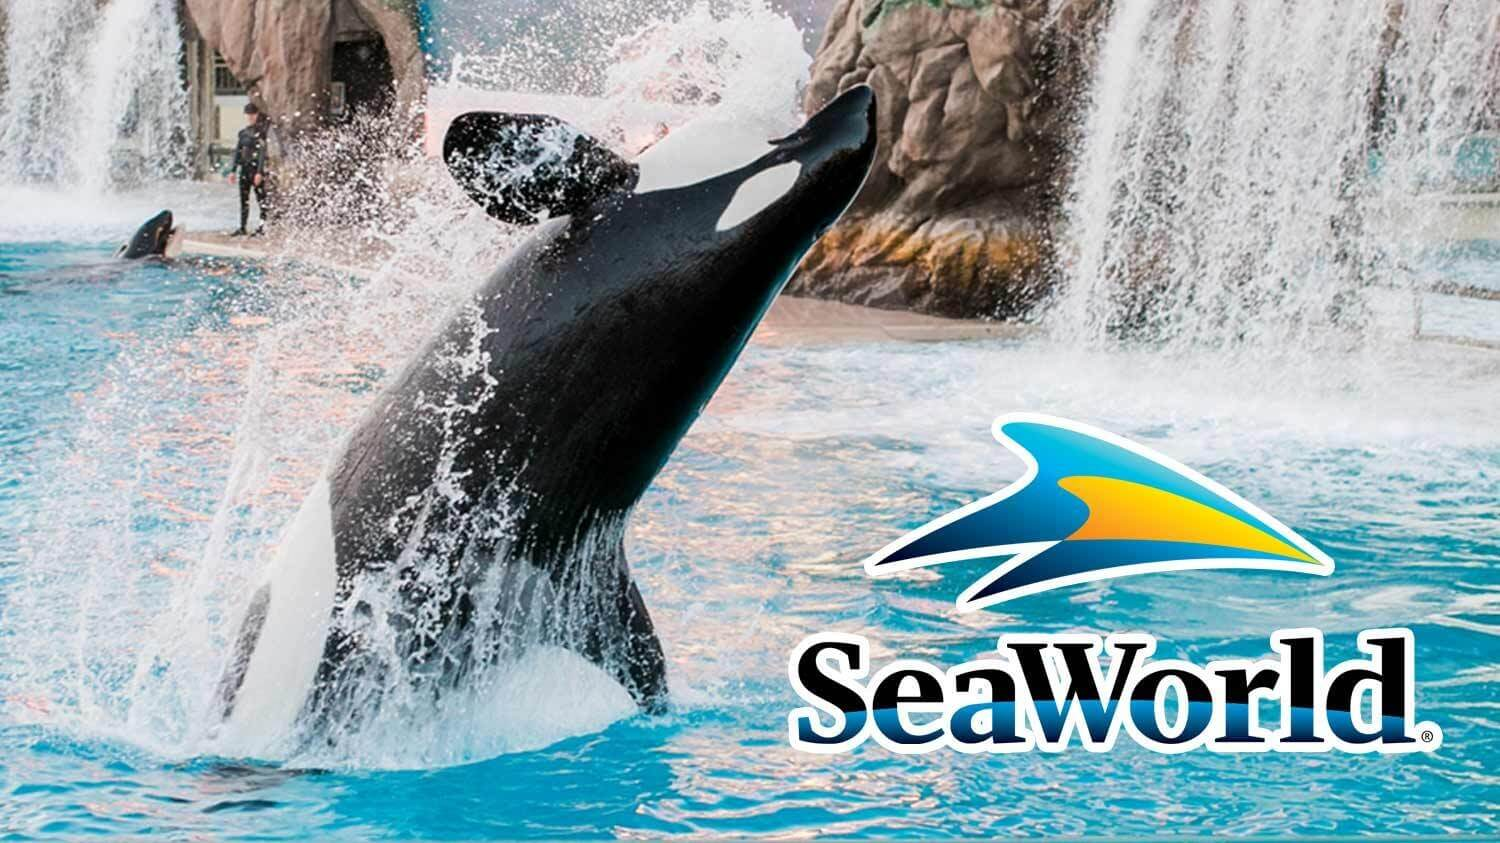 SeaWorld's Revenue Has Dropped 95% From 2019